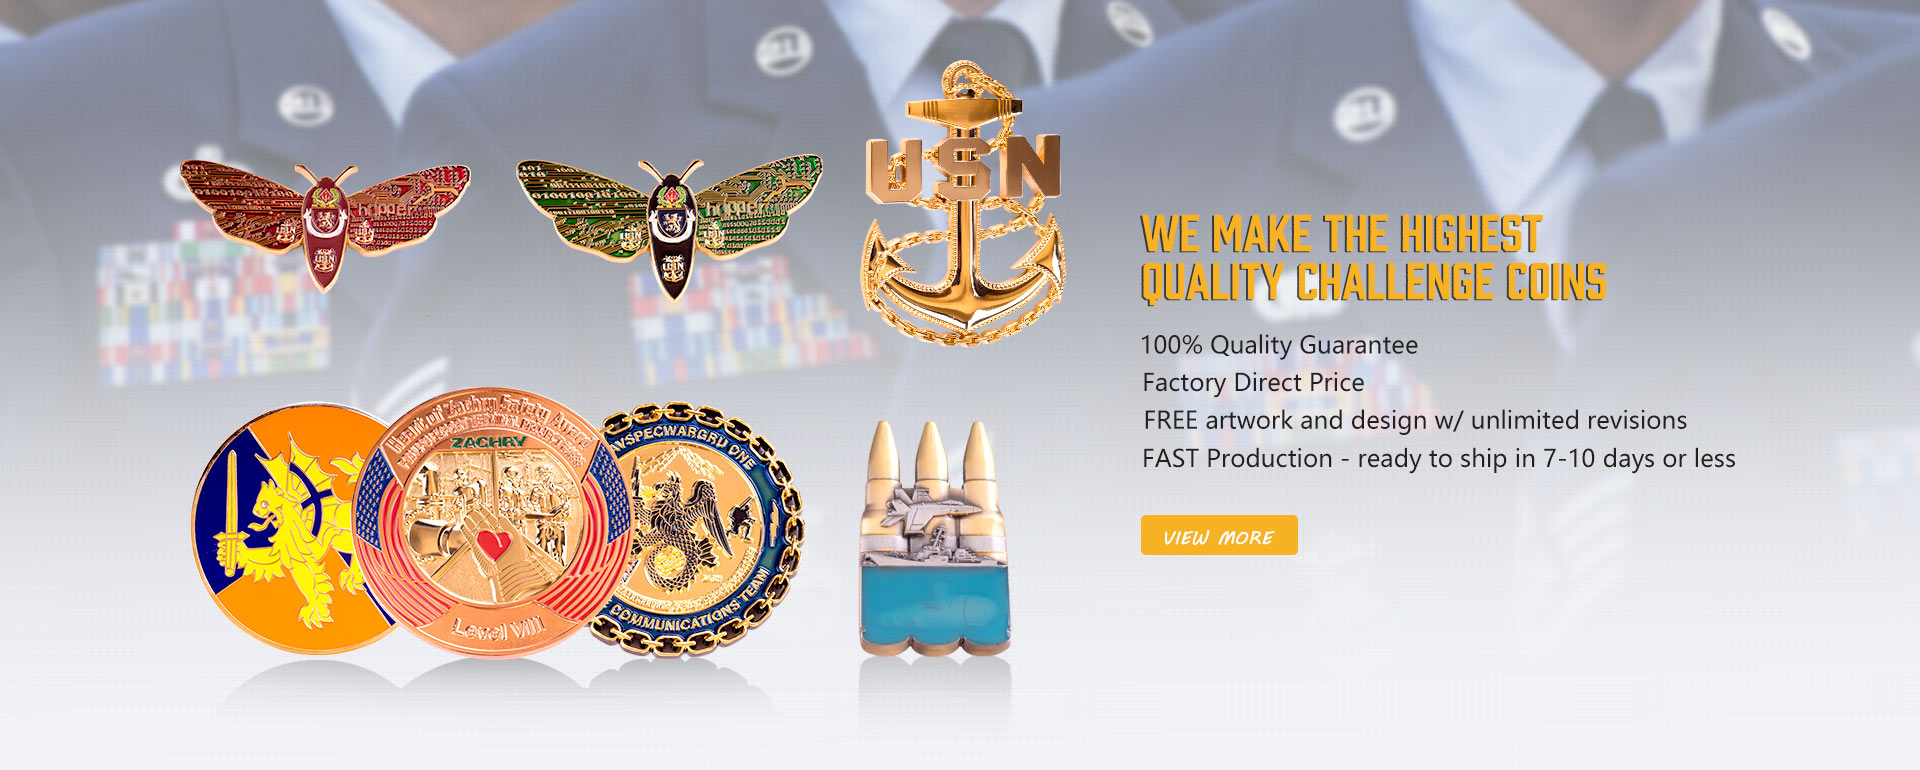 We make the highest quality Challenge Coins